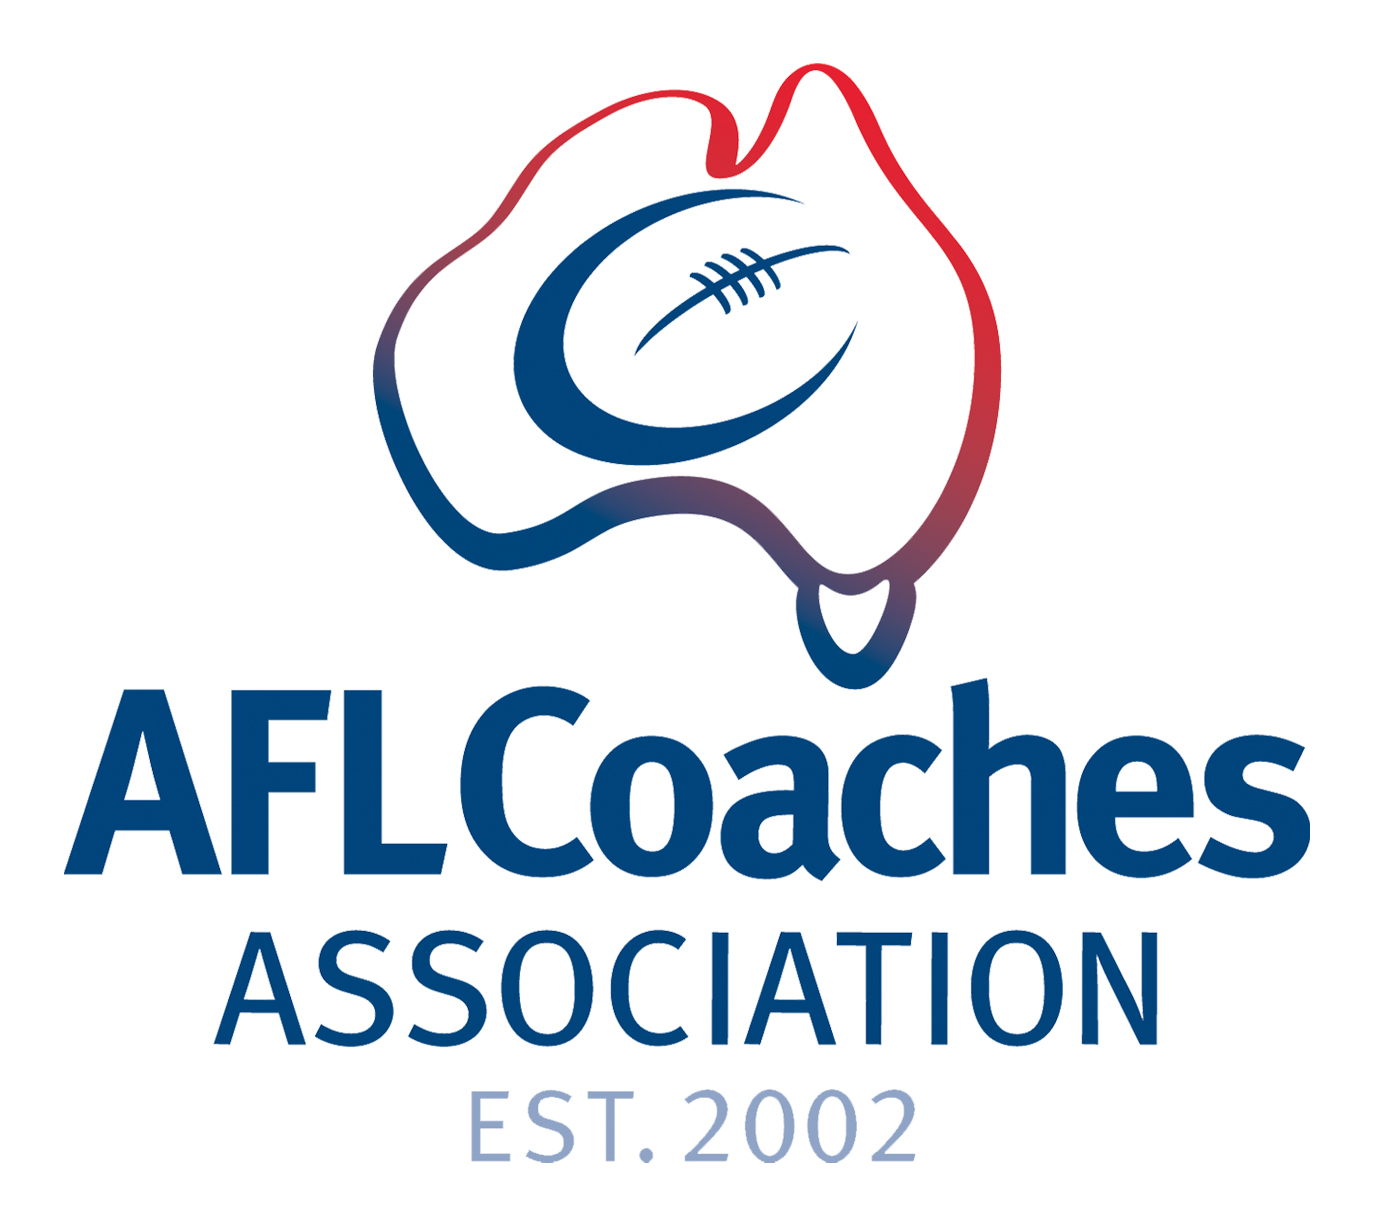 AFL Coaches Association